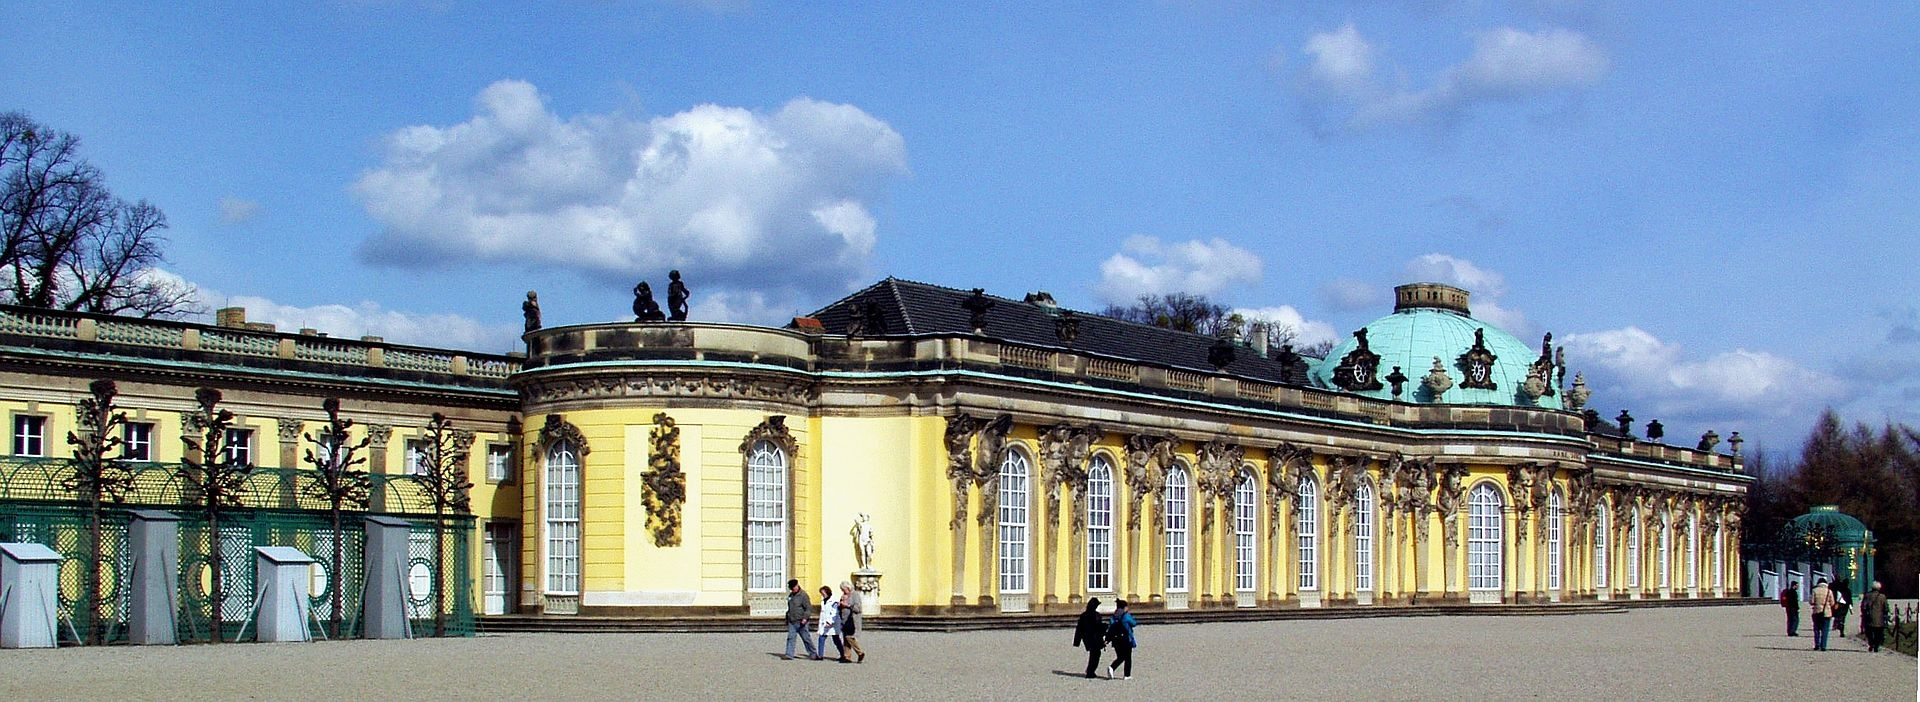 The Garden Facade Of Sanssouci by Raimond Spekking